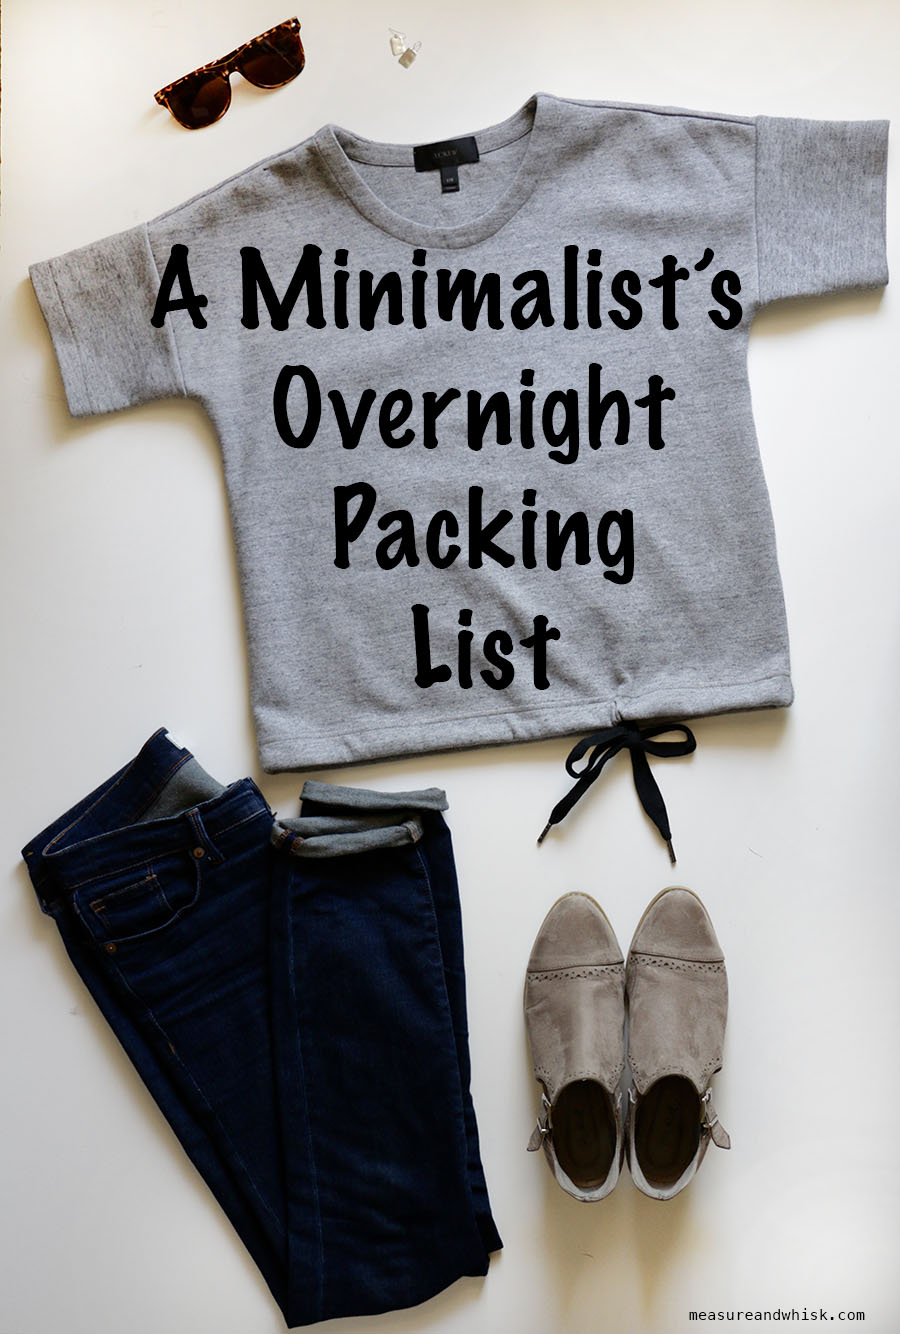 What to pack for overnight trip